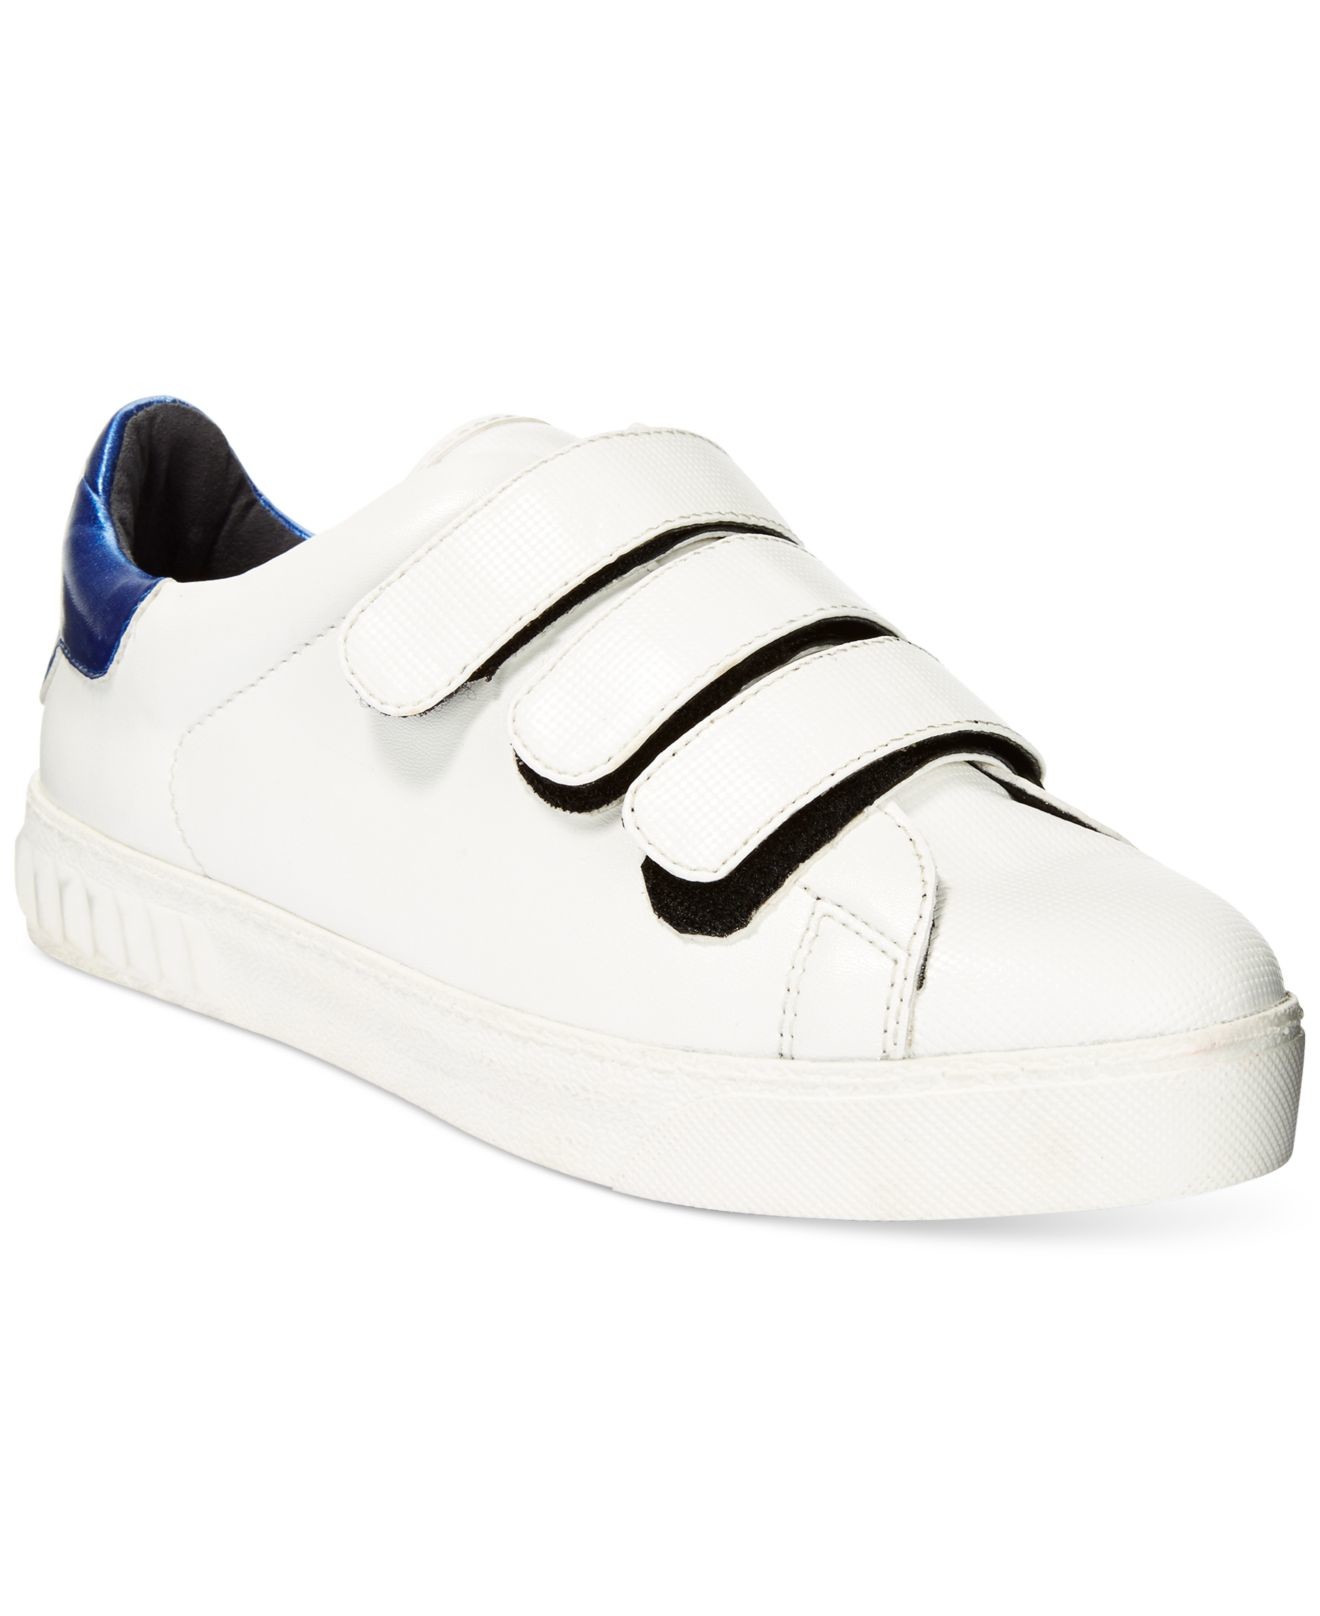 f1877ad4a2fd Lyst - Circus by Sam Edelman Chase Velcro Sneakers in White